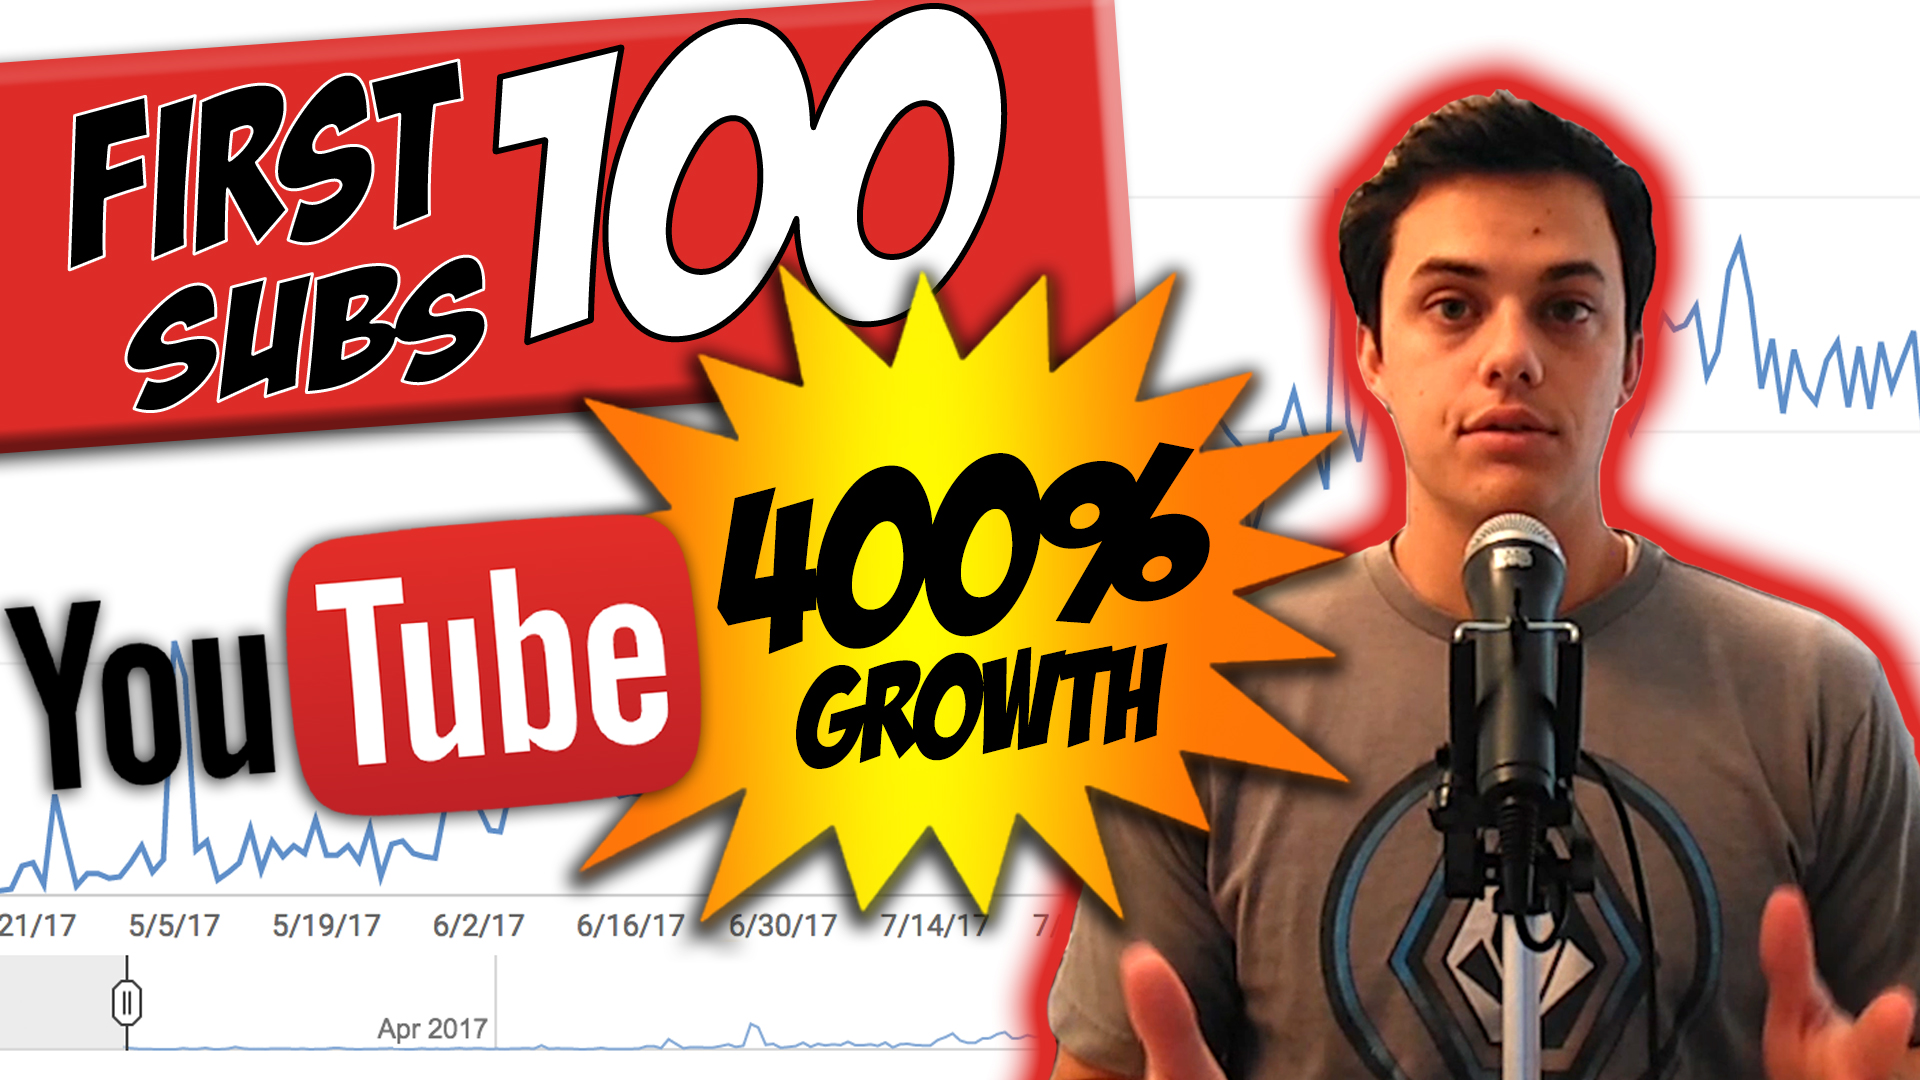 First 100 subscribers on YouTube and 400% Growth!